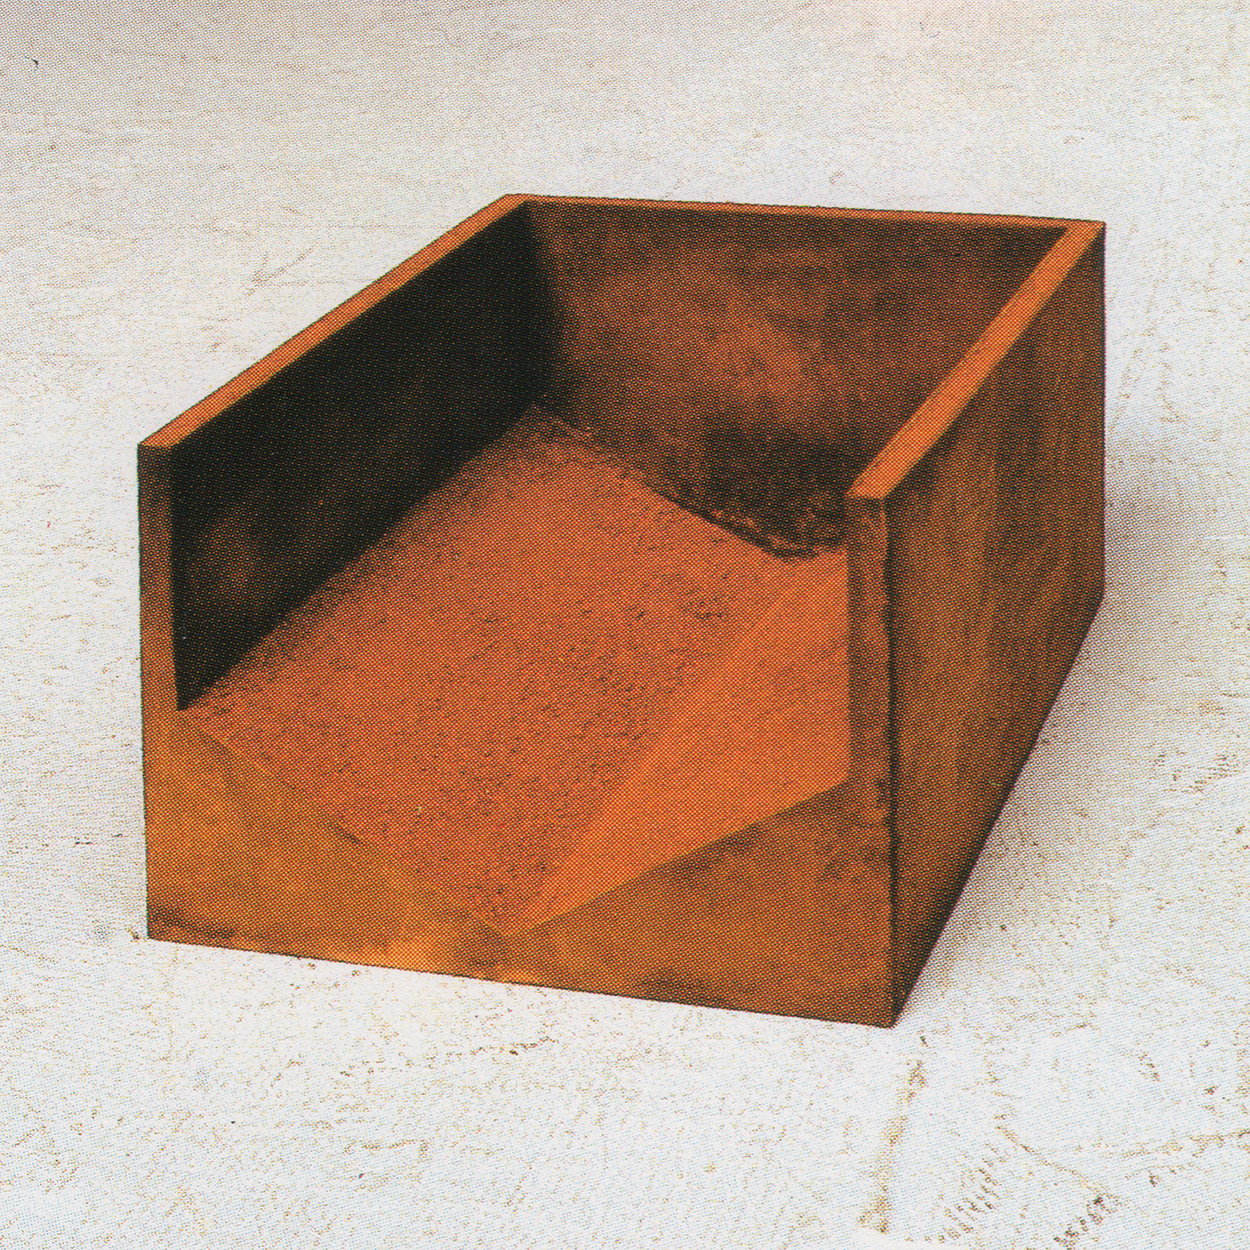 Day|iron and red sand|18 x 32 x 24 cm|1990